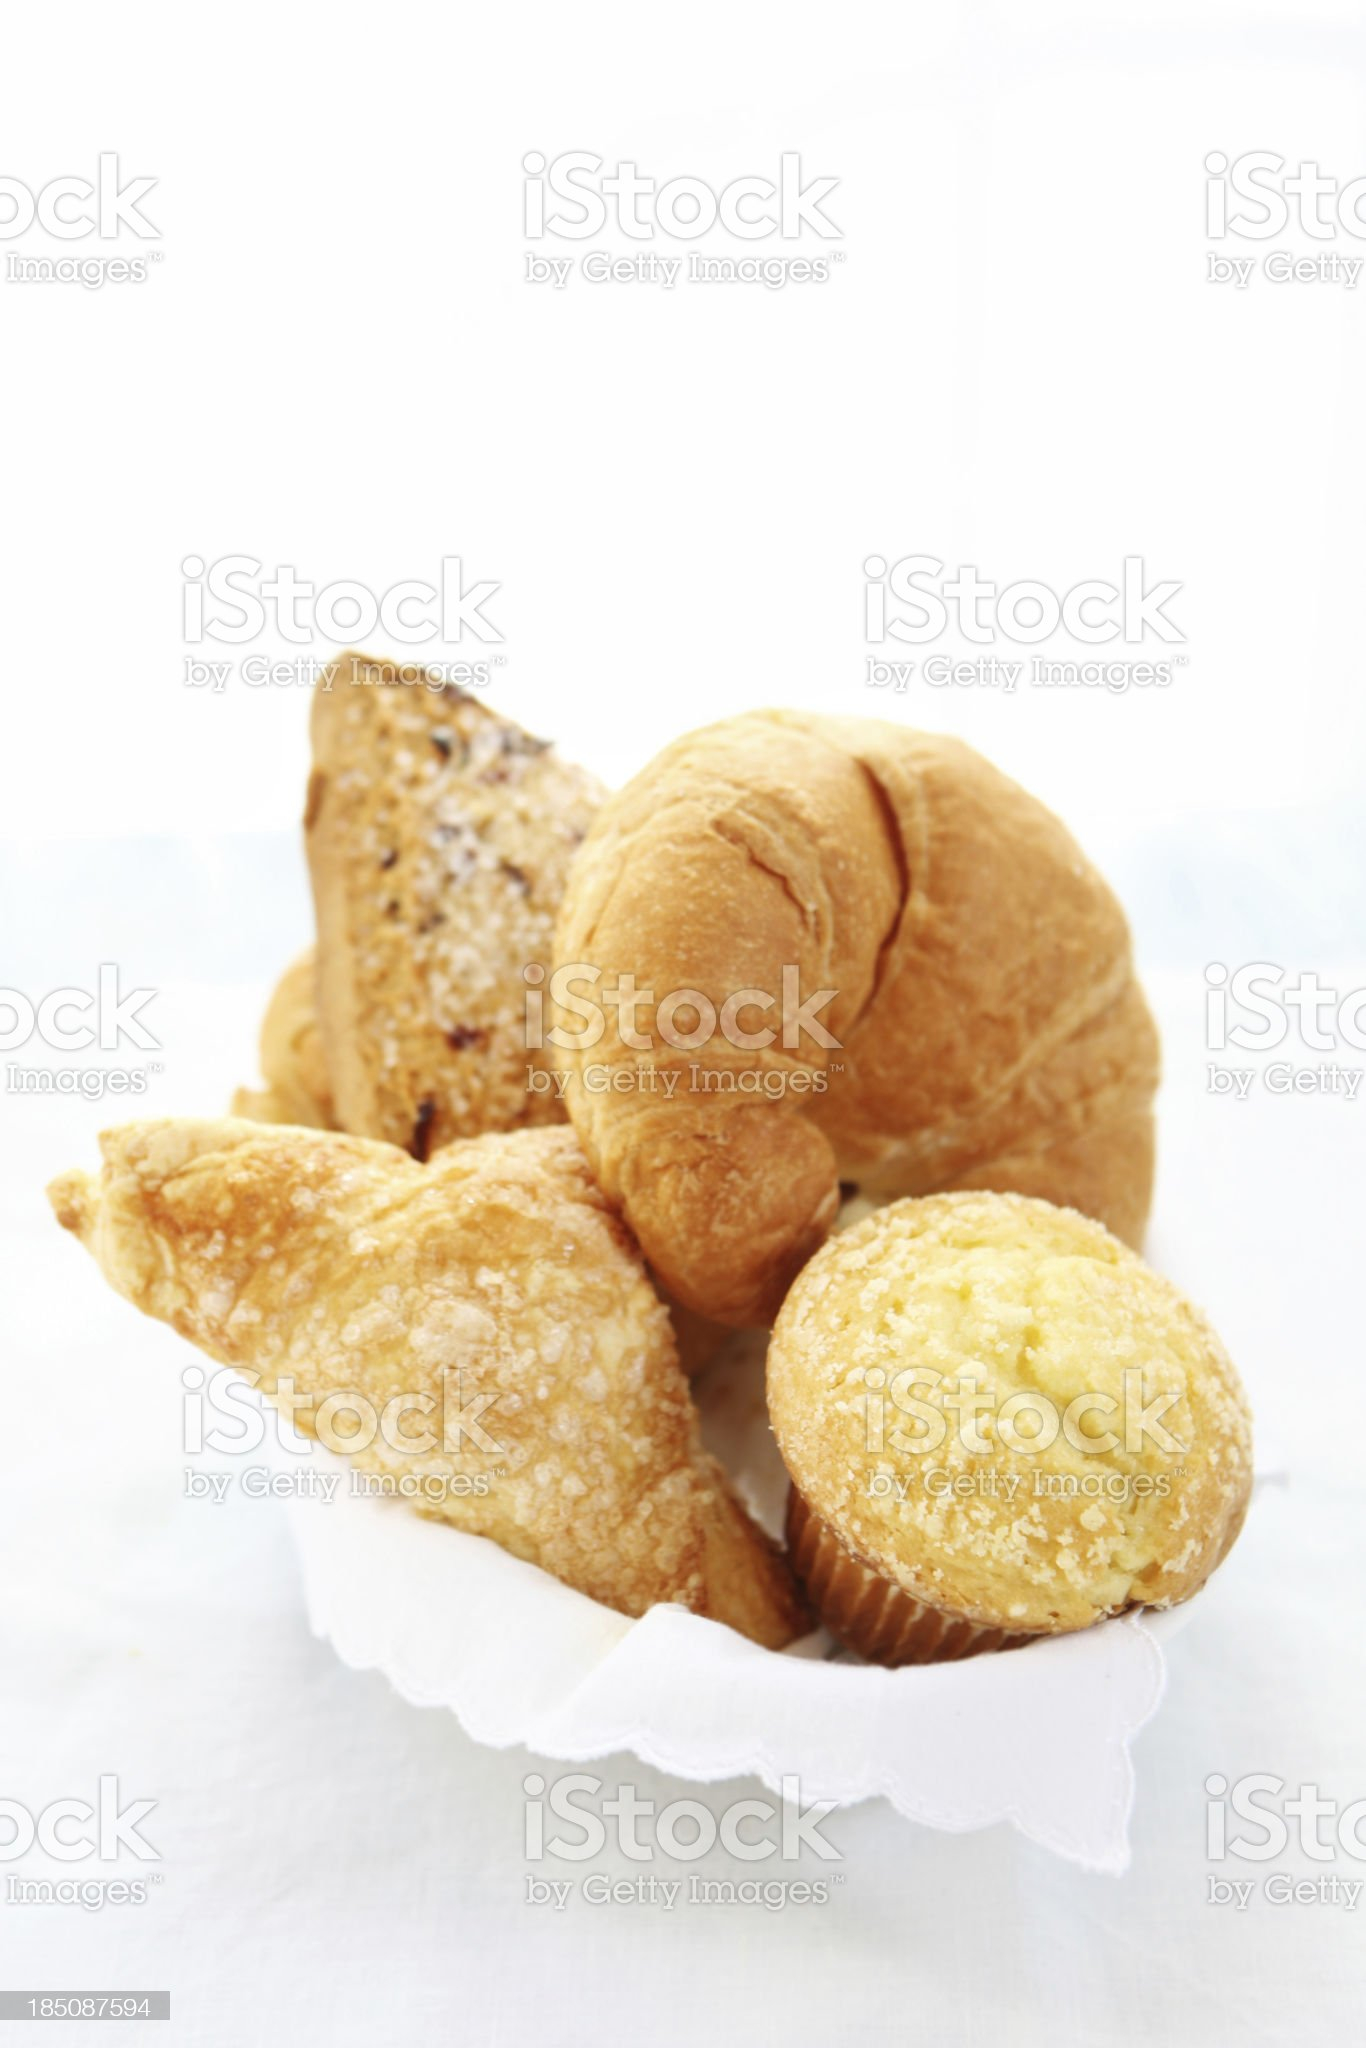 bread and pastry basket royalty-free stock photo